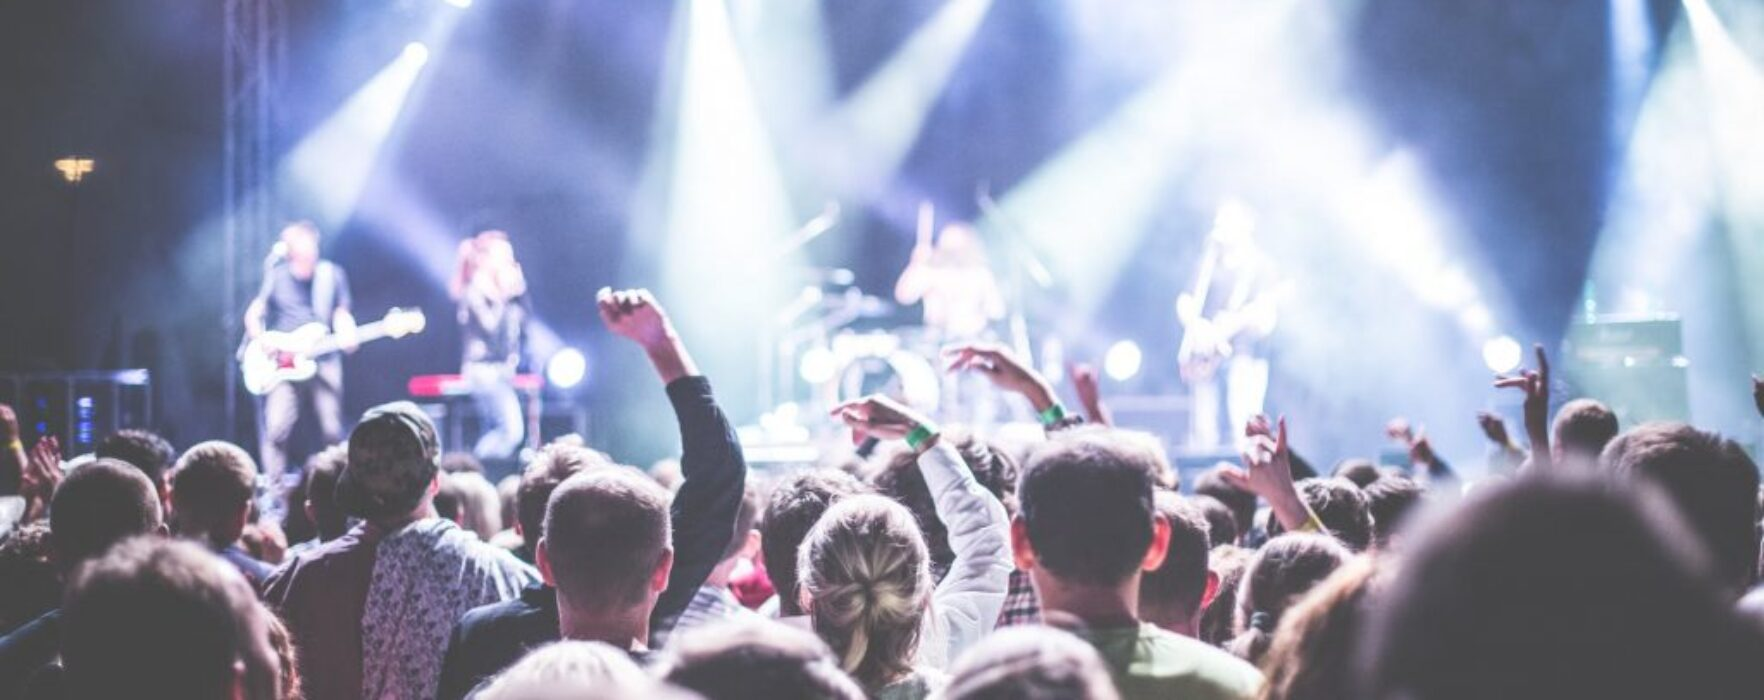 Almost £1bn is spent yearly on gigs and live events that we have no interest in at all